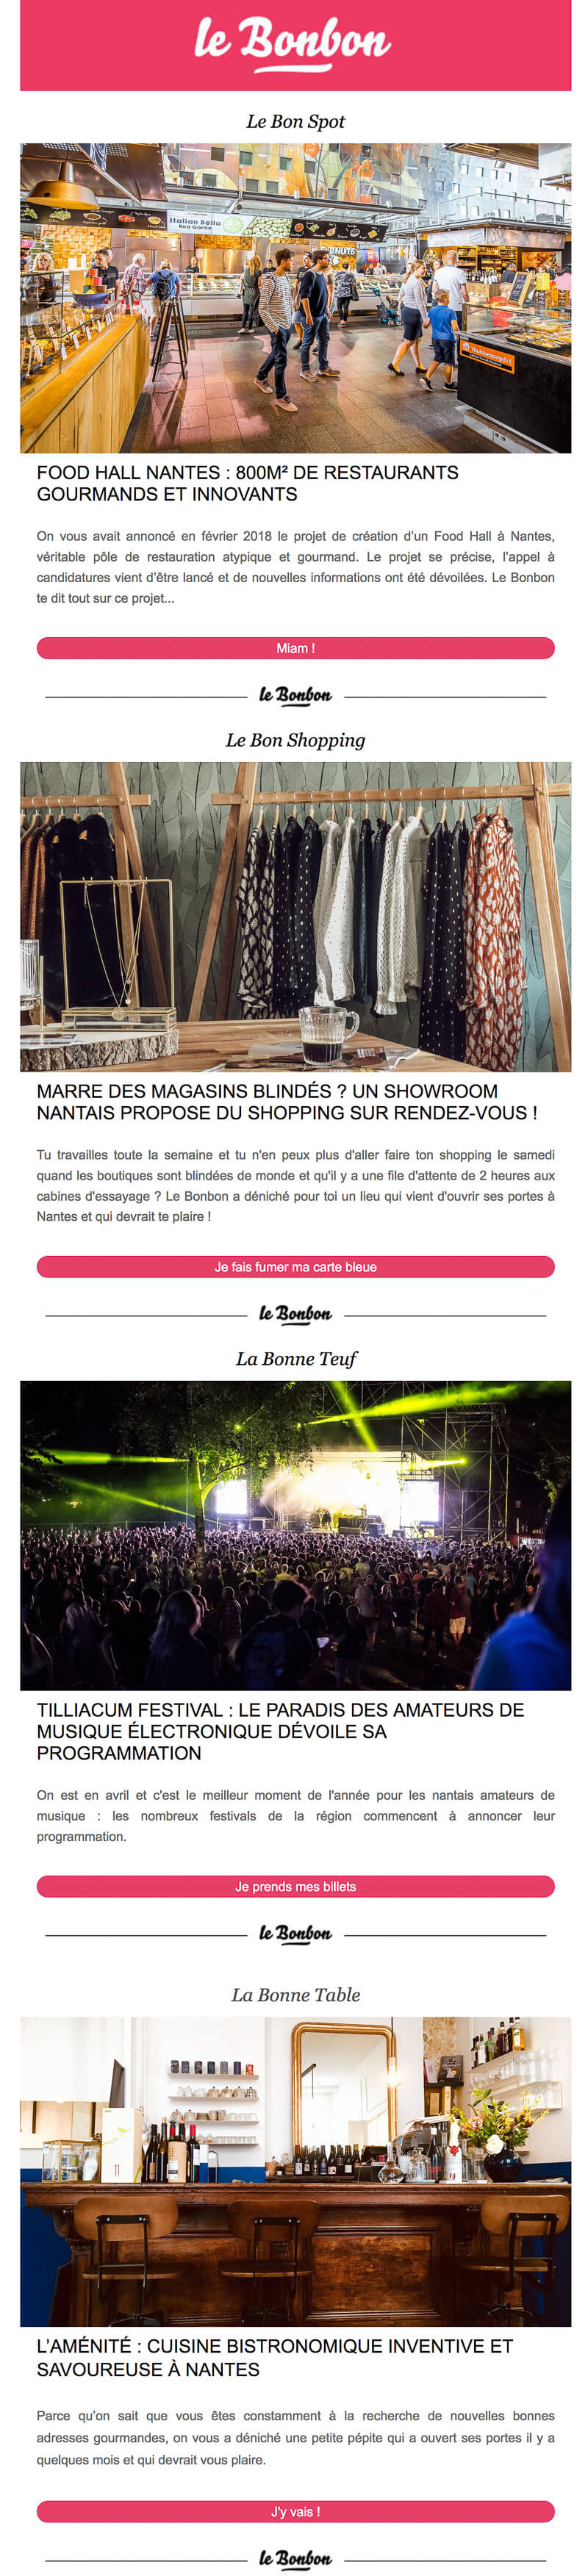 Newsletter Le Bonbon